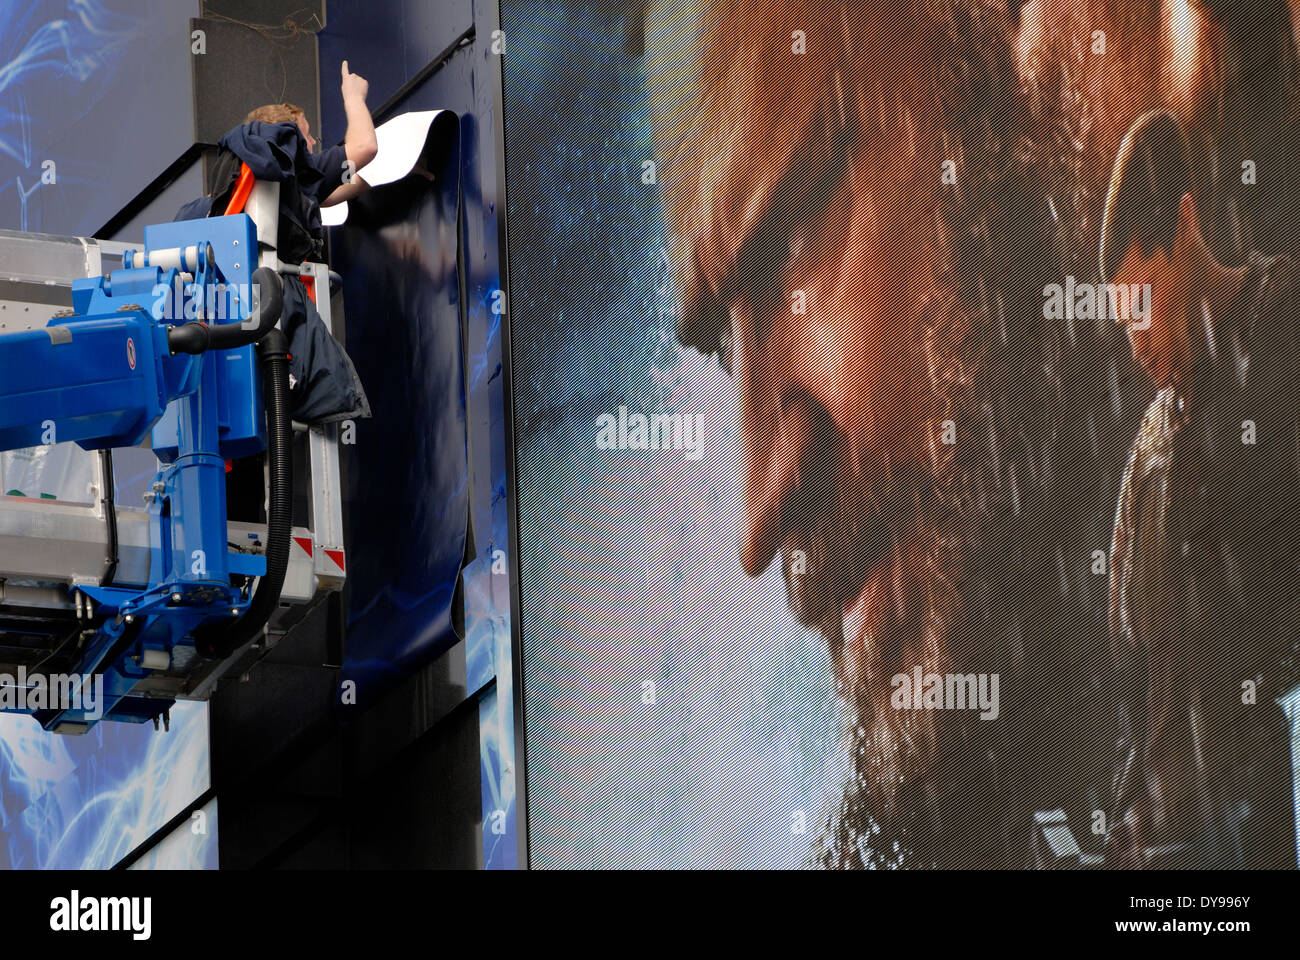 London, England, UK. Odeon Cinema, Leicester Square. Men sticking posters to facade for Noah film (2014) - Stock Image